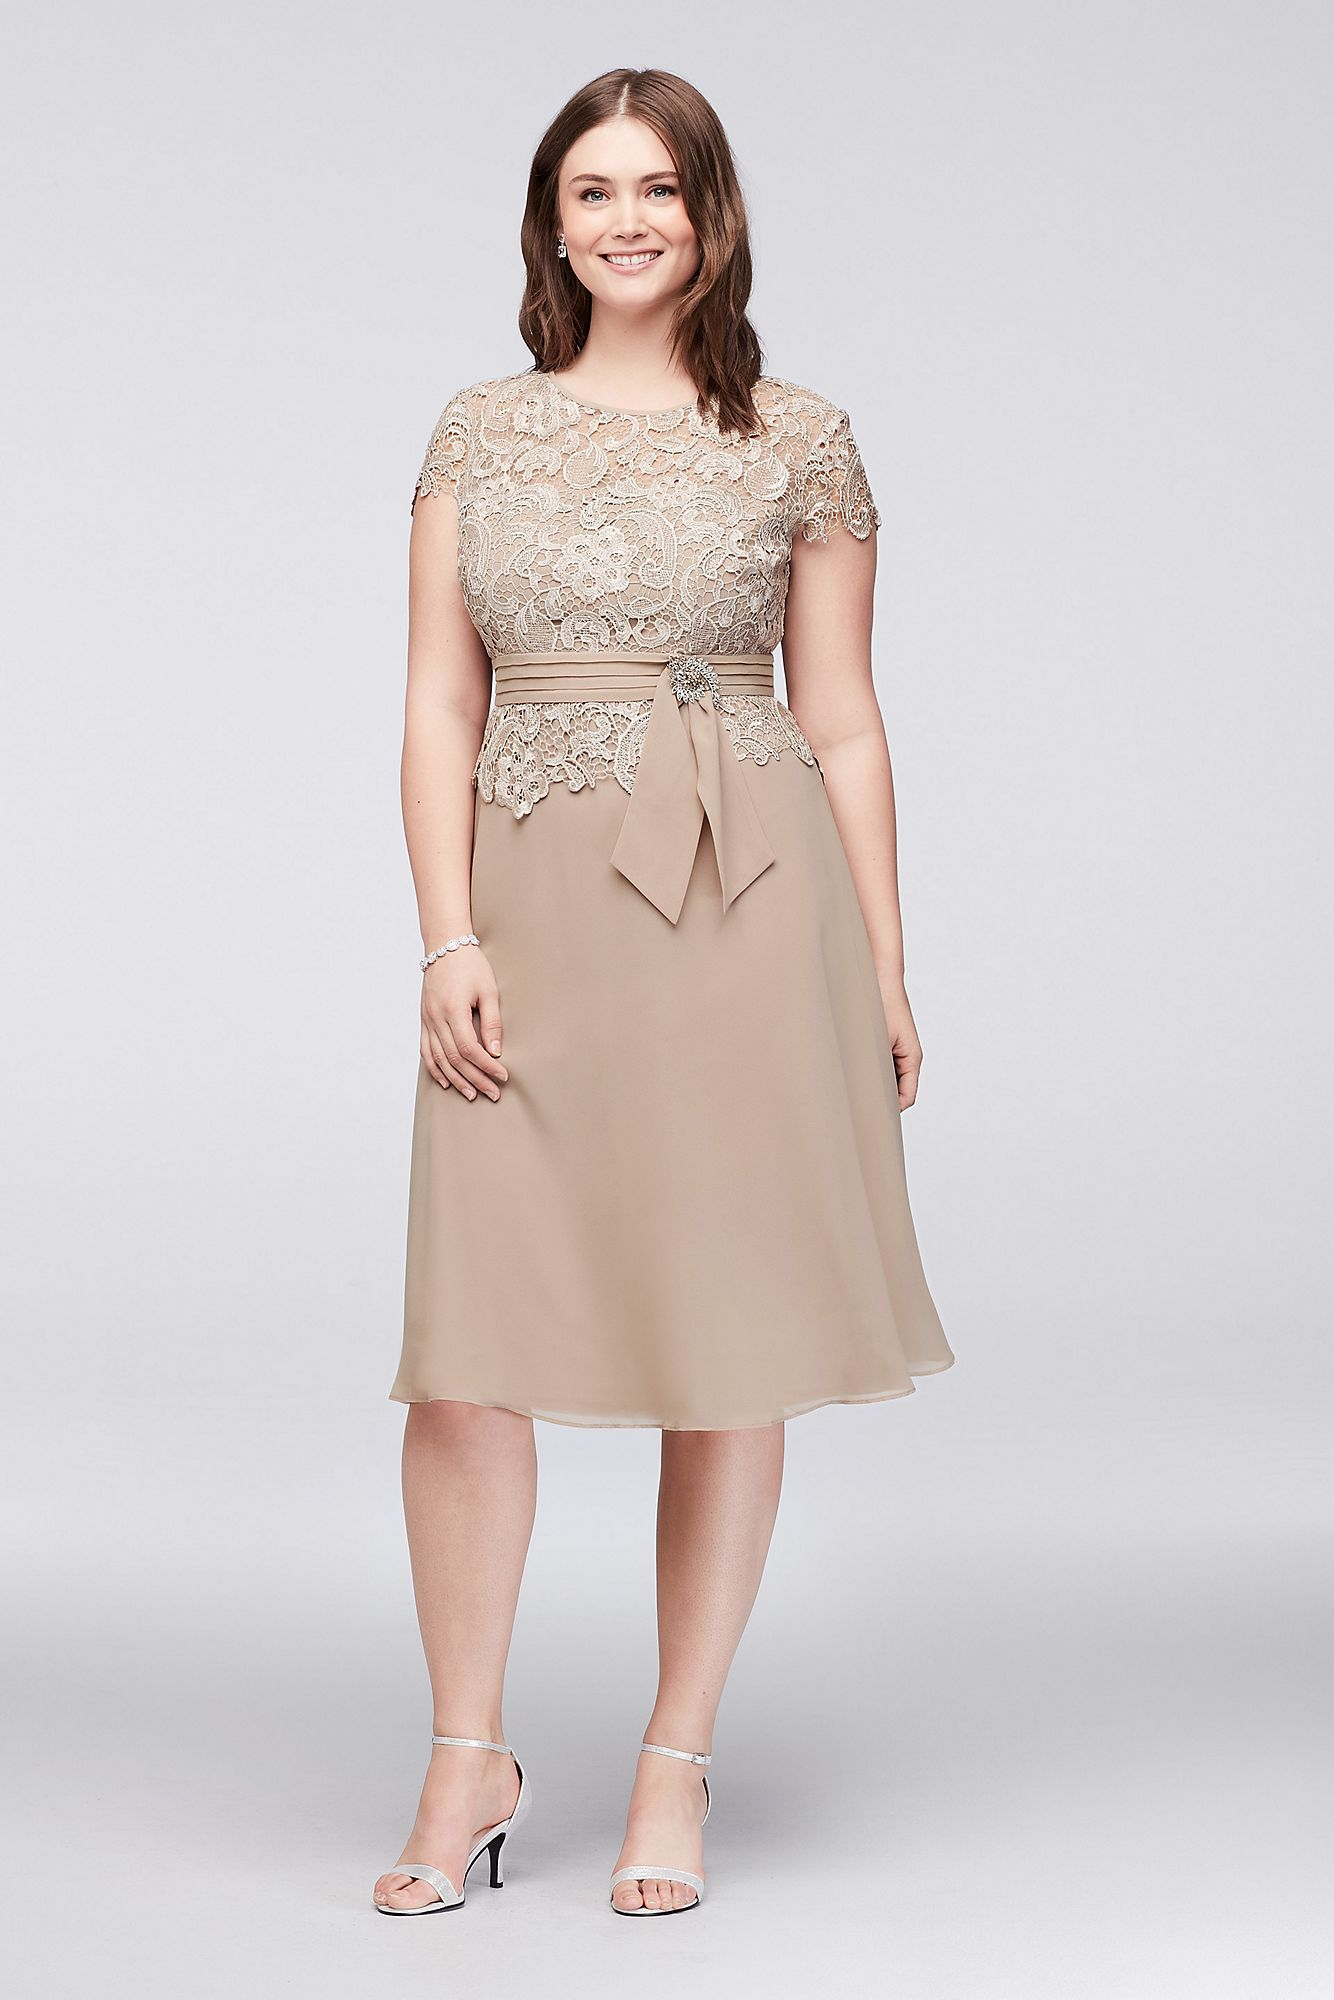 d298035d612 Plus Size Knee Length Short Sleeves Lace Mother of the Bride Dress Style  1720981DB